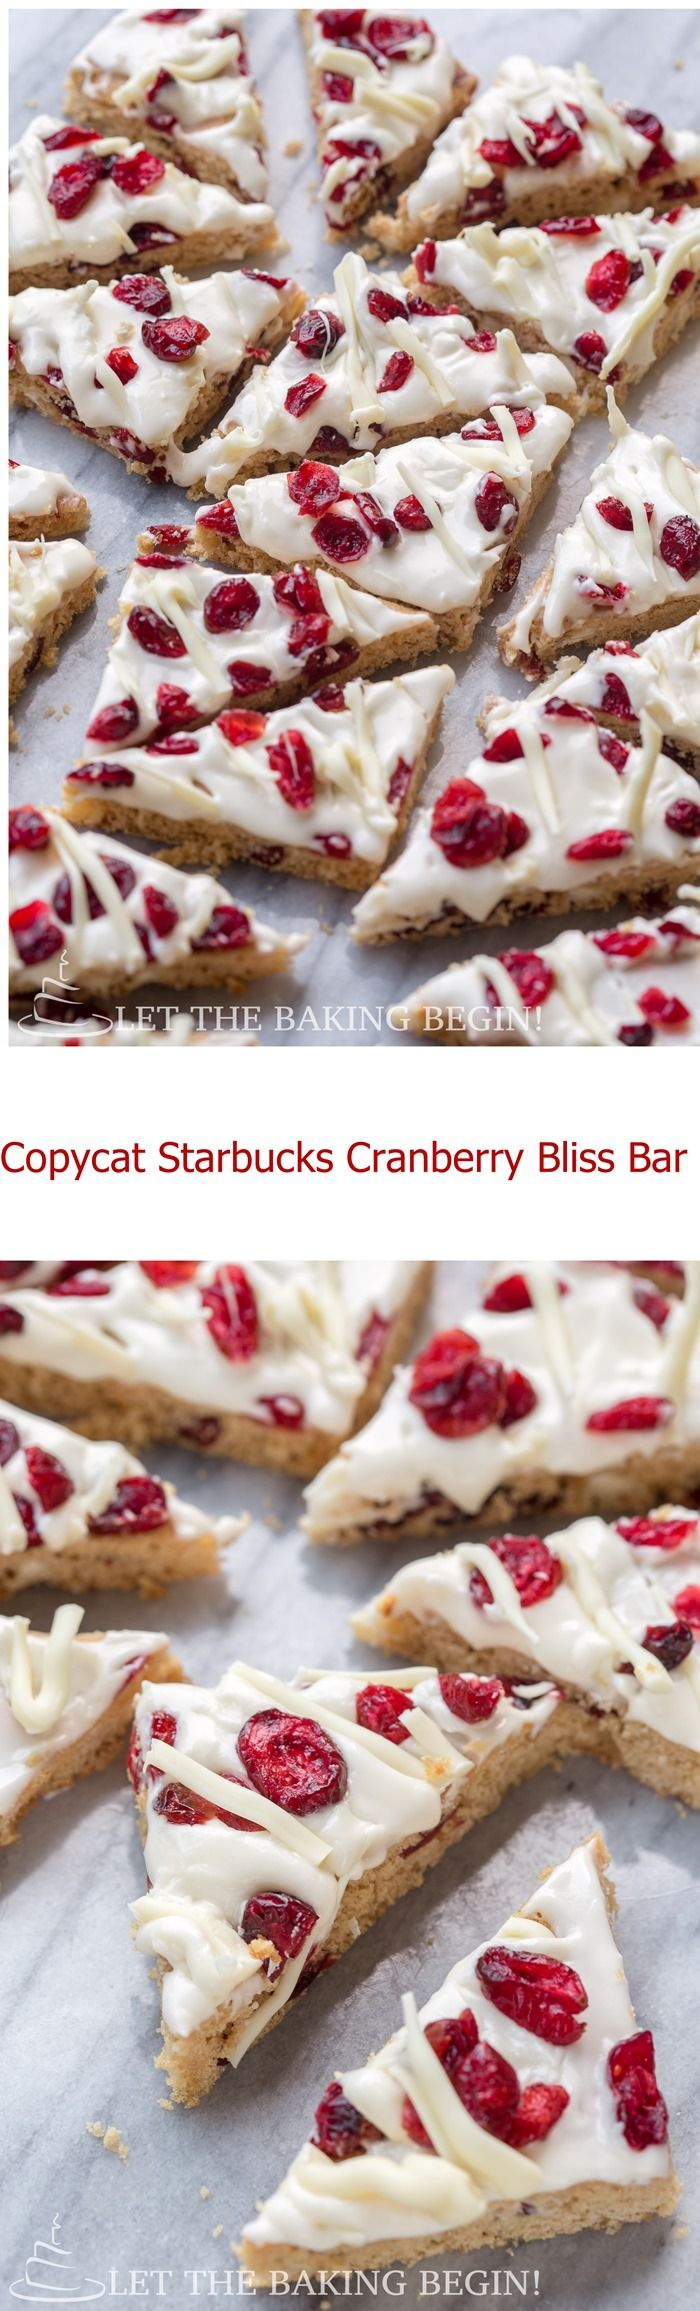 Copycat Starbucks Cranberry Bliss Bars - copy of the original Cranberry Bliss Bar